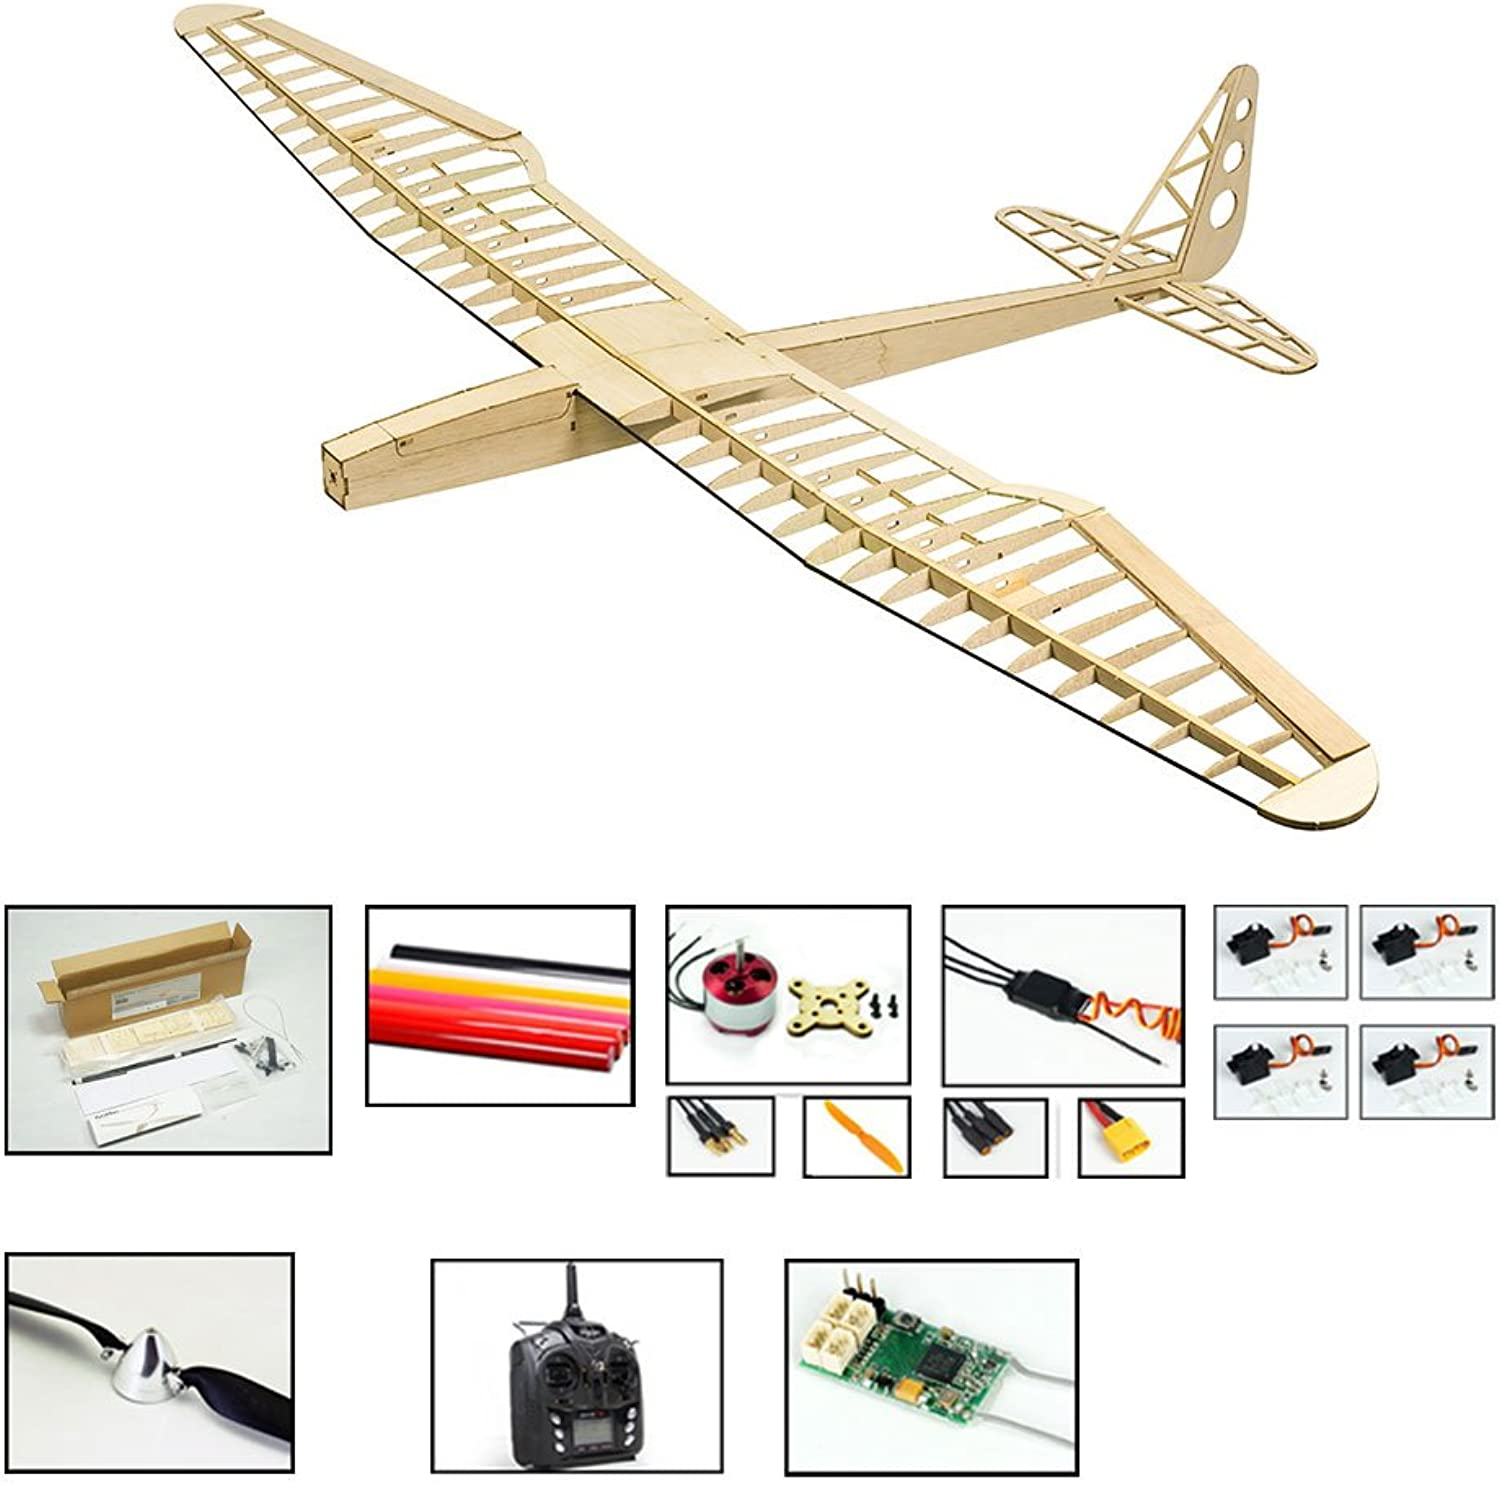 RC Glider Planes, DW Hobby Sunbird Balsa Wood Model Airplane, 1599mm Wingspan, Radio Controlled Model Aircraft Kits to Build and Fly for Adults (F1604C-R3)